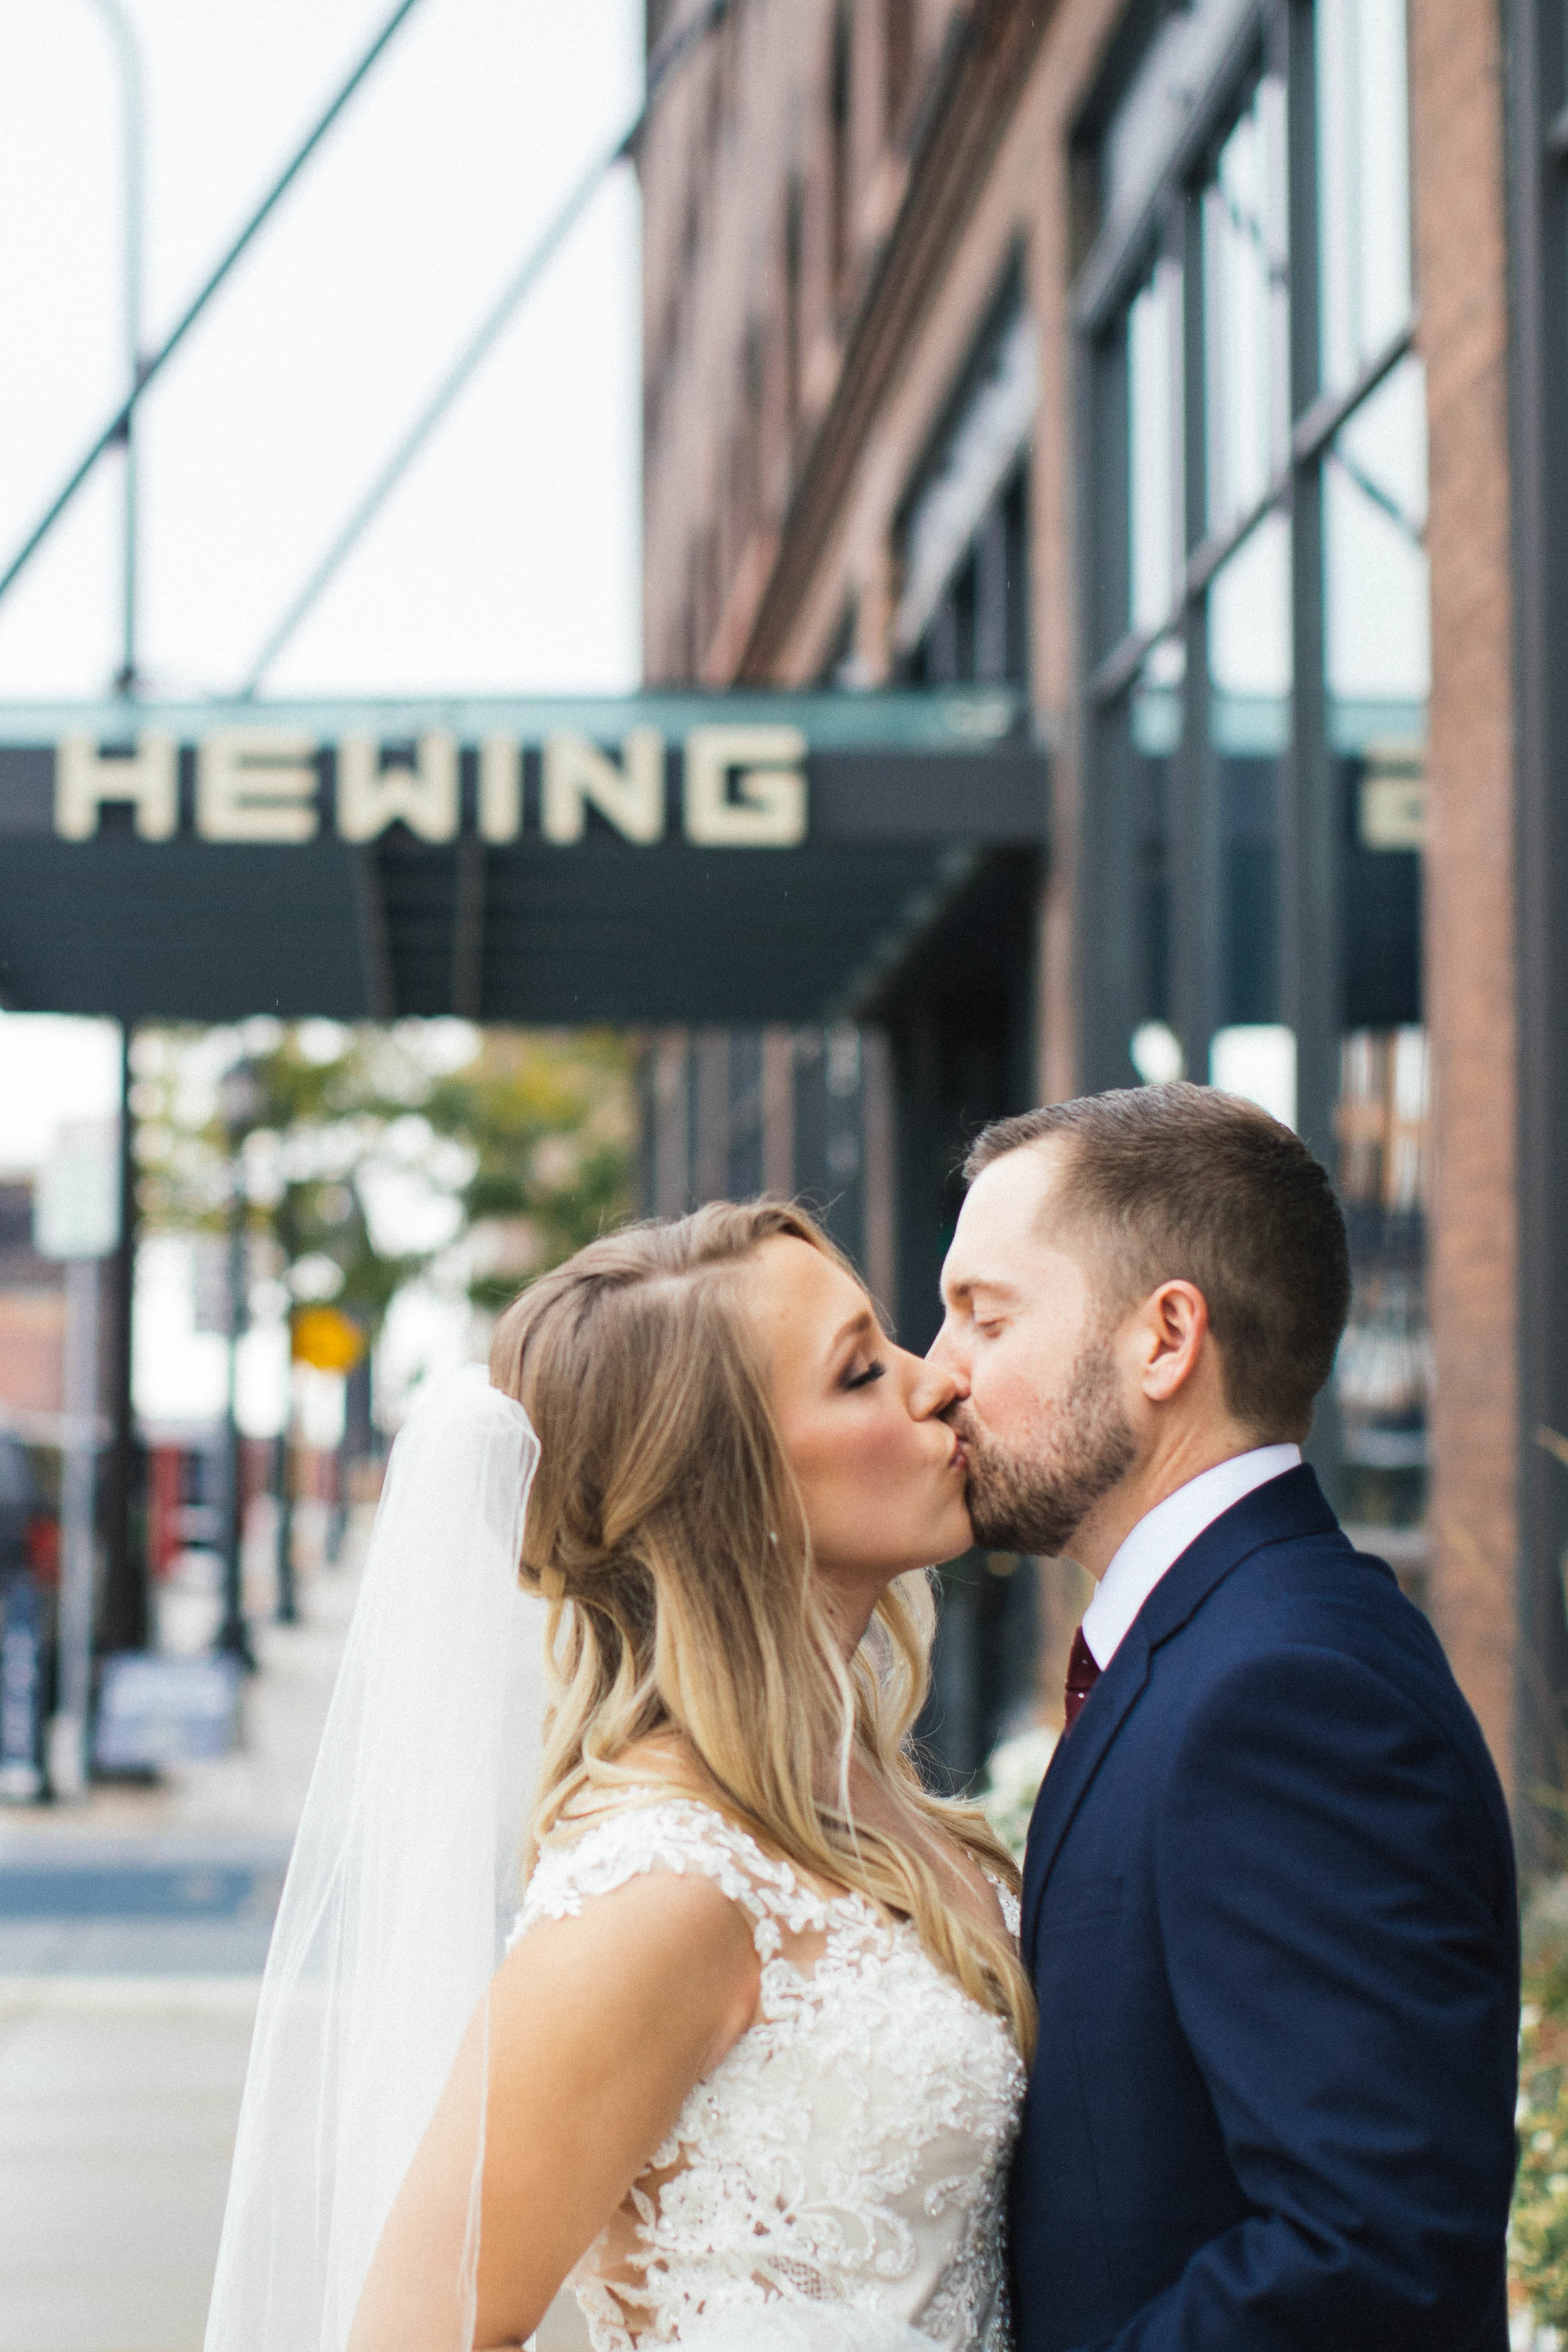 Hewing Hotel Autumn Wedding Photography